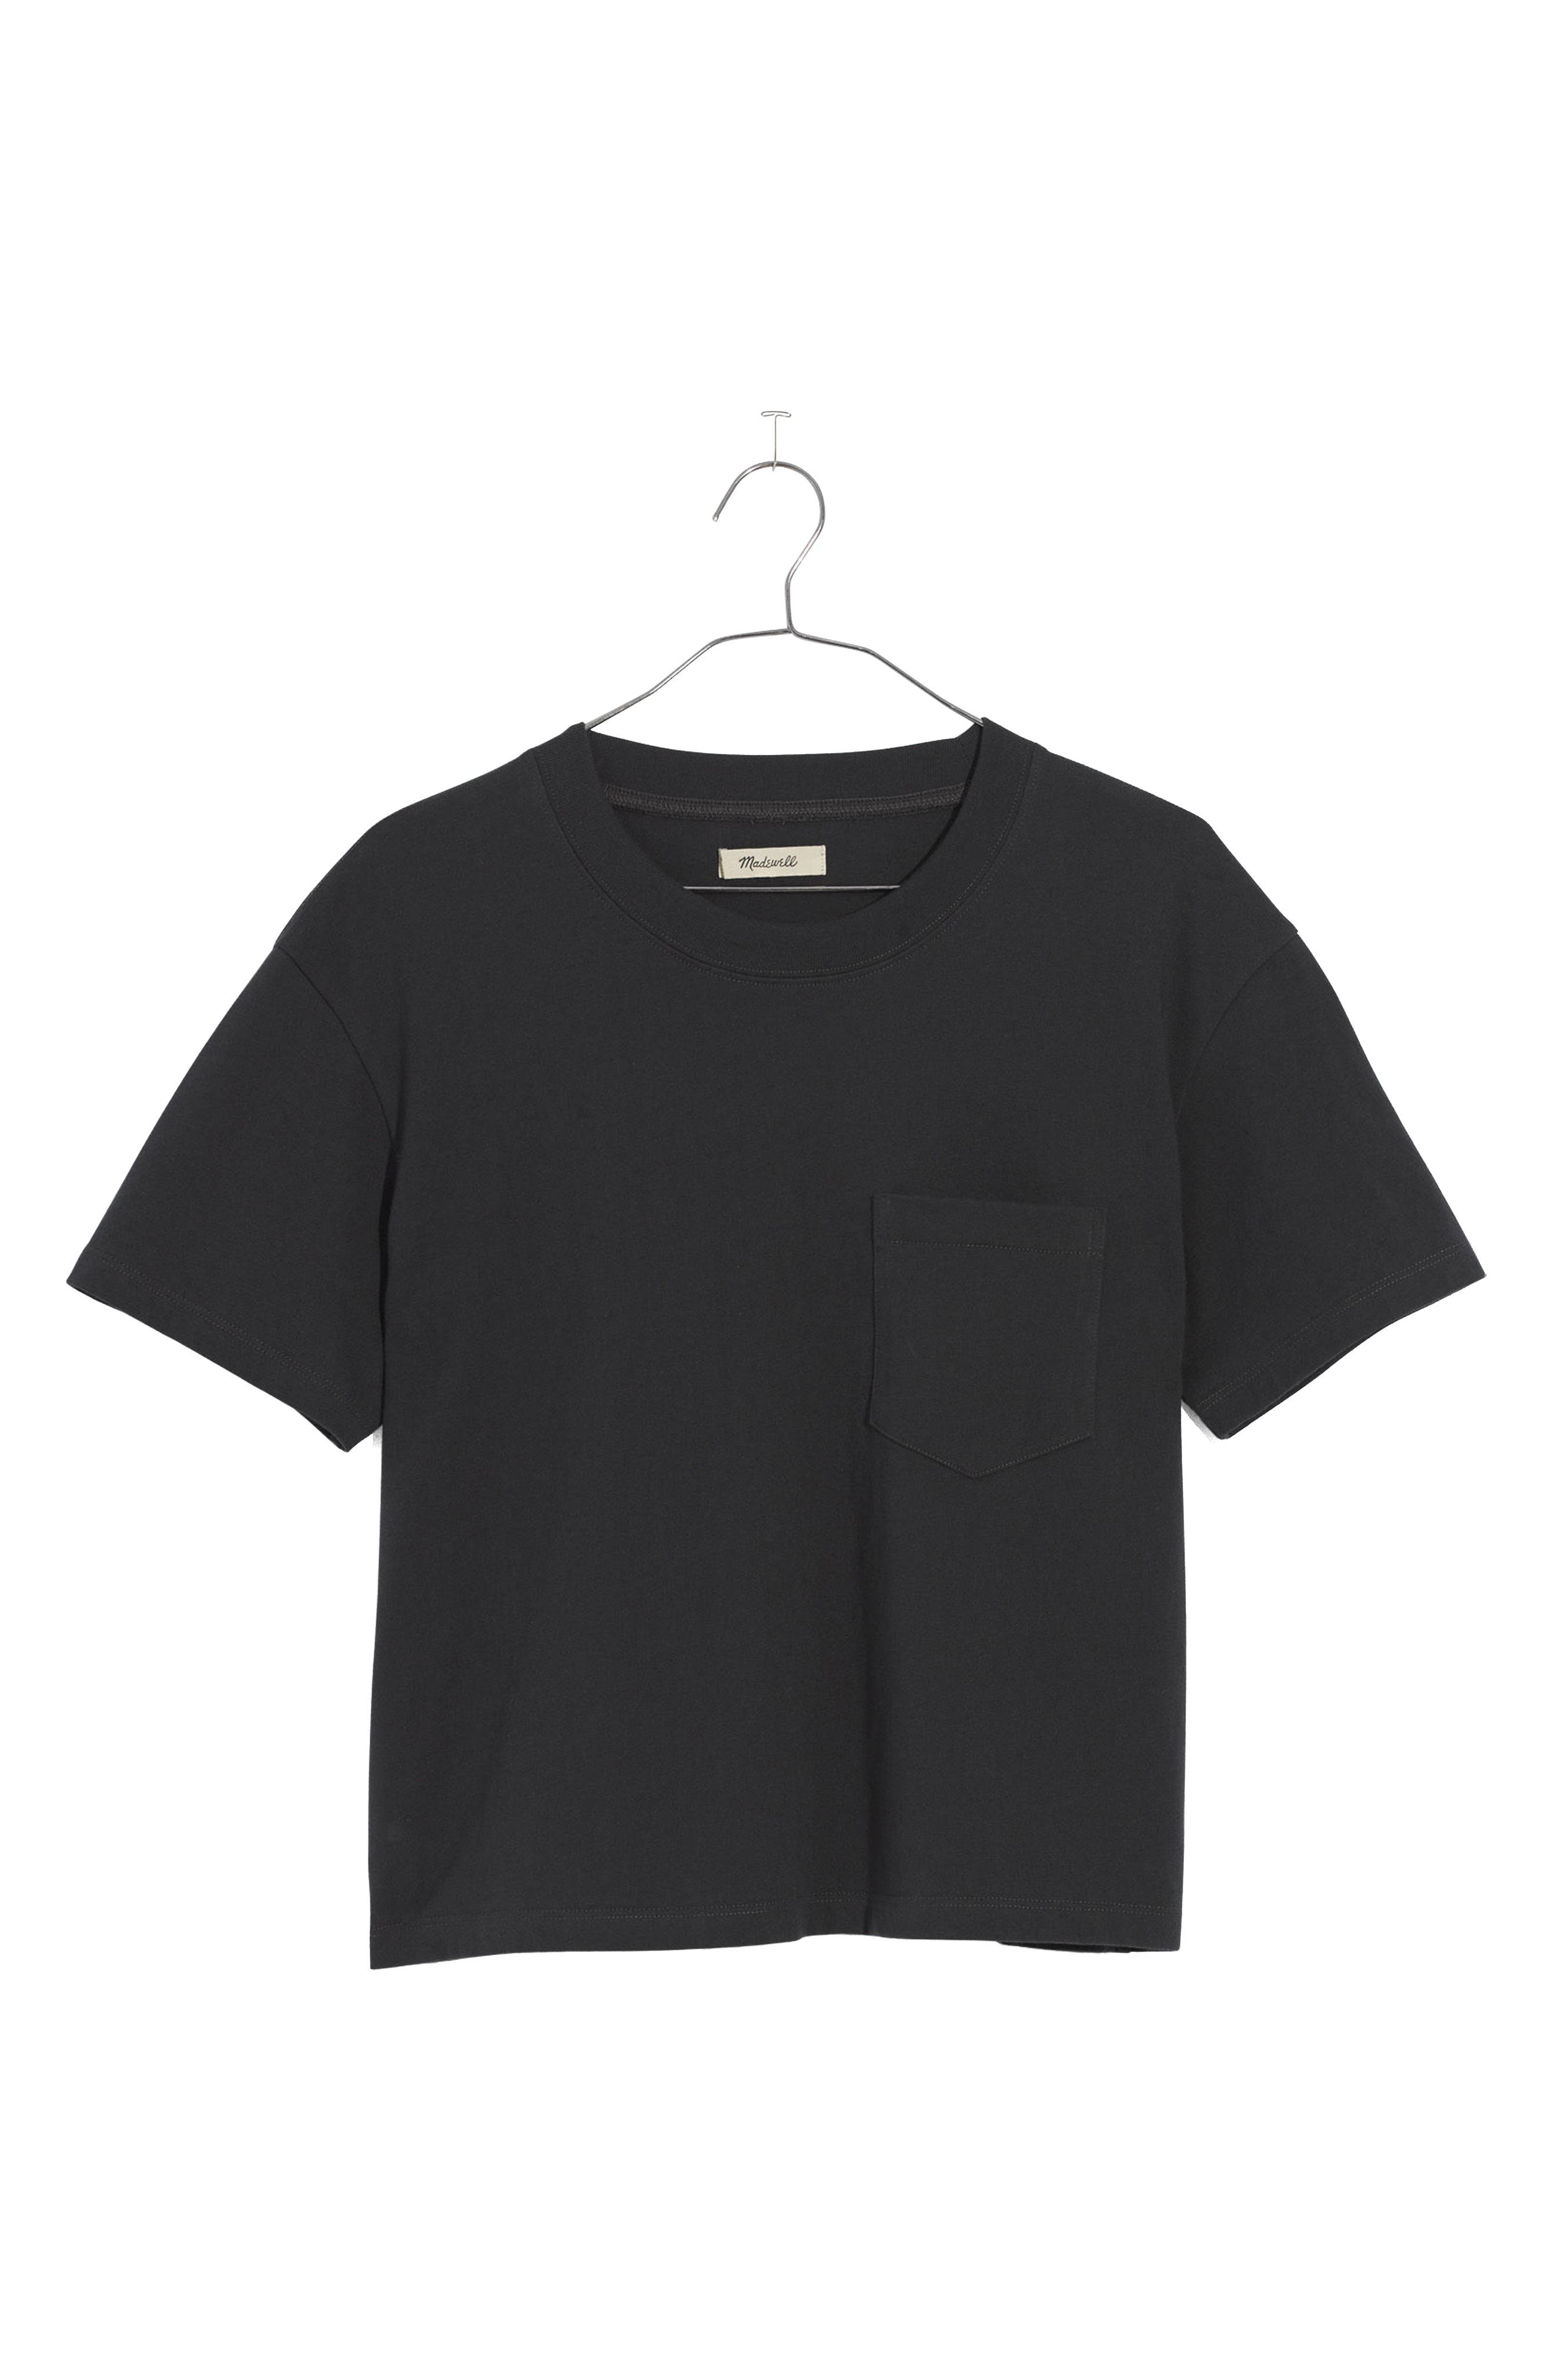 Easy Crop Tee,                             Main thumbnail 1, color,                             001